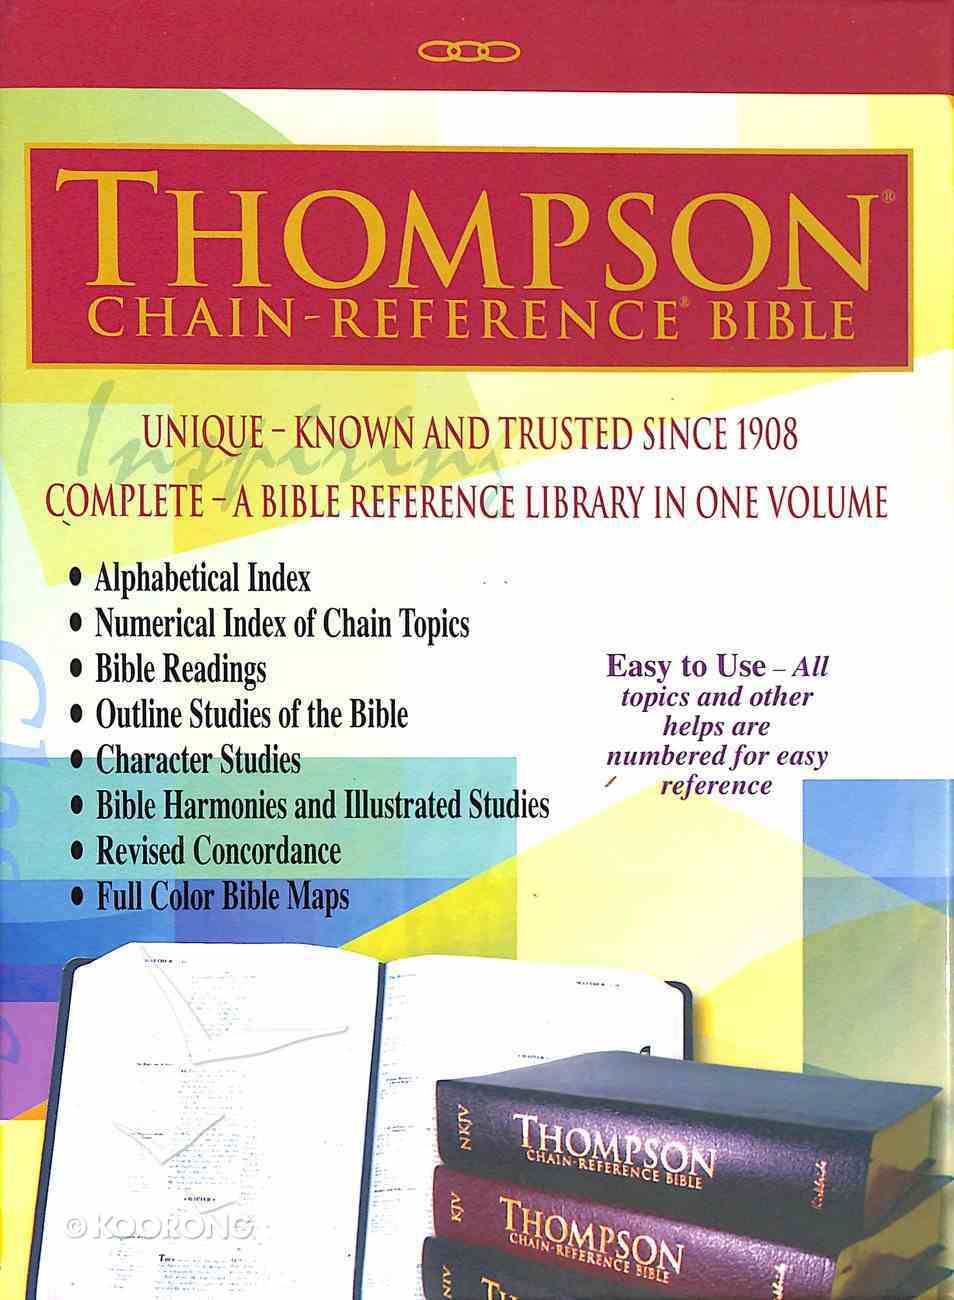 KJV Thompson Chain-Reference Bible Black Handy Size (Red Letter Edition) Genuine Leather